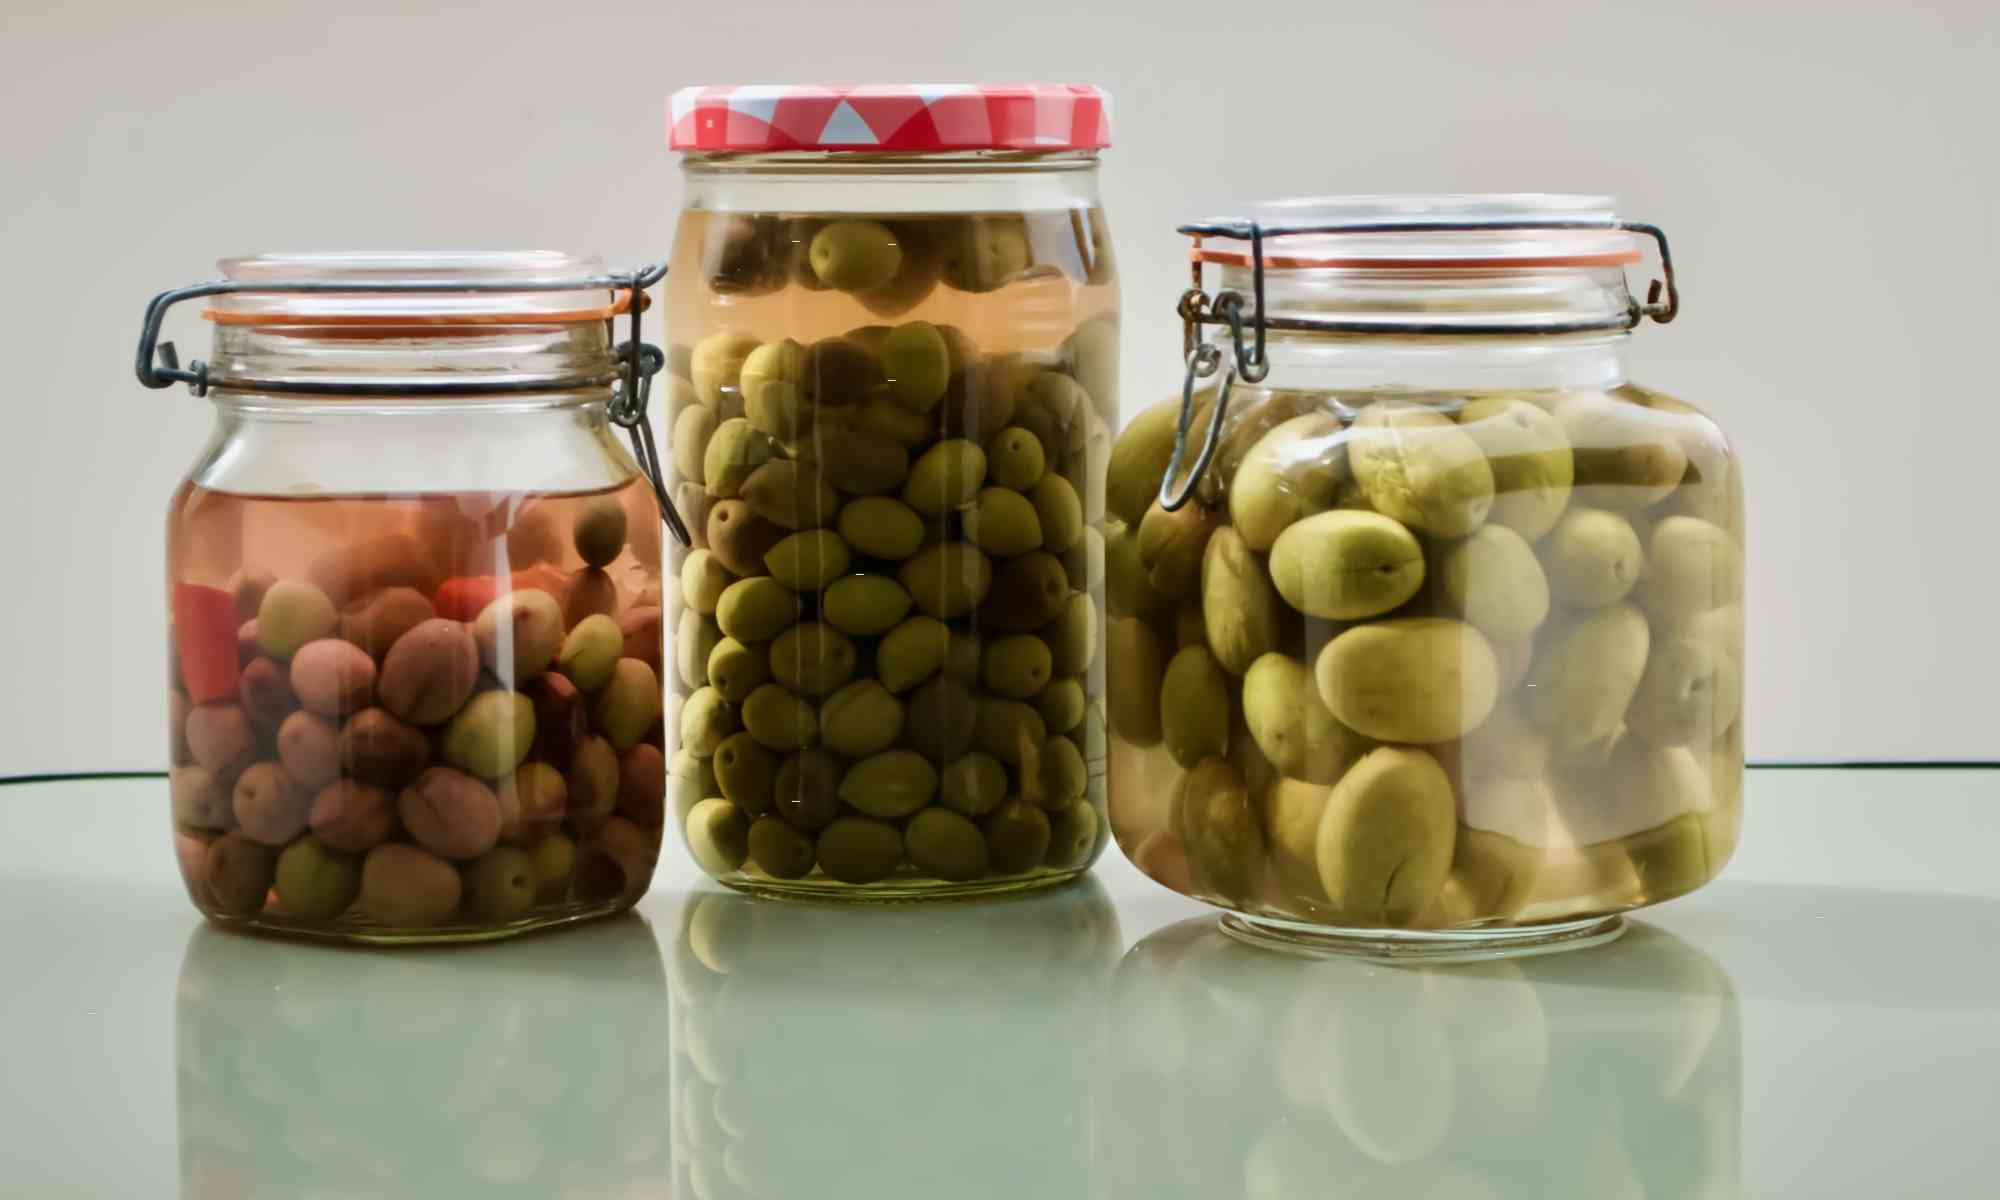 Homemade olives in jars - Pollensa Private Chefs